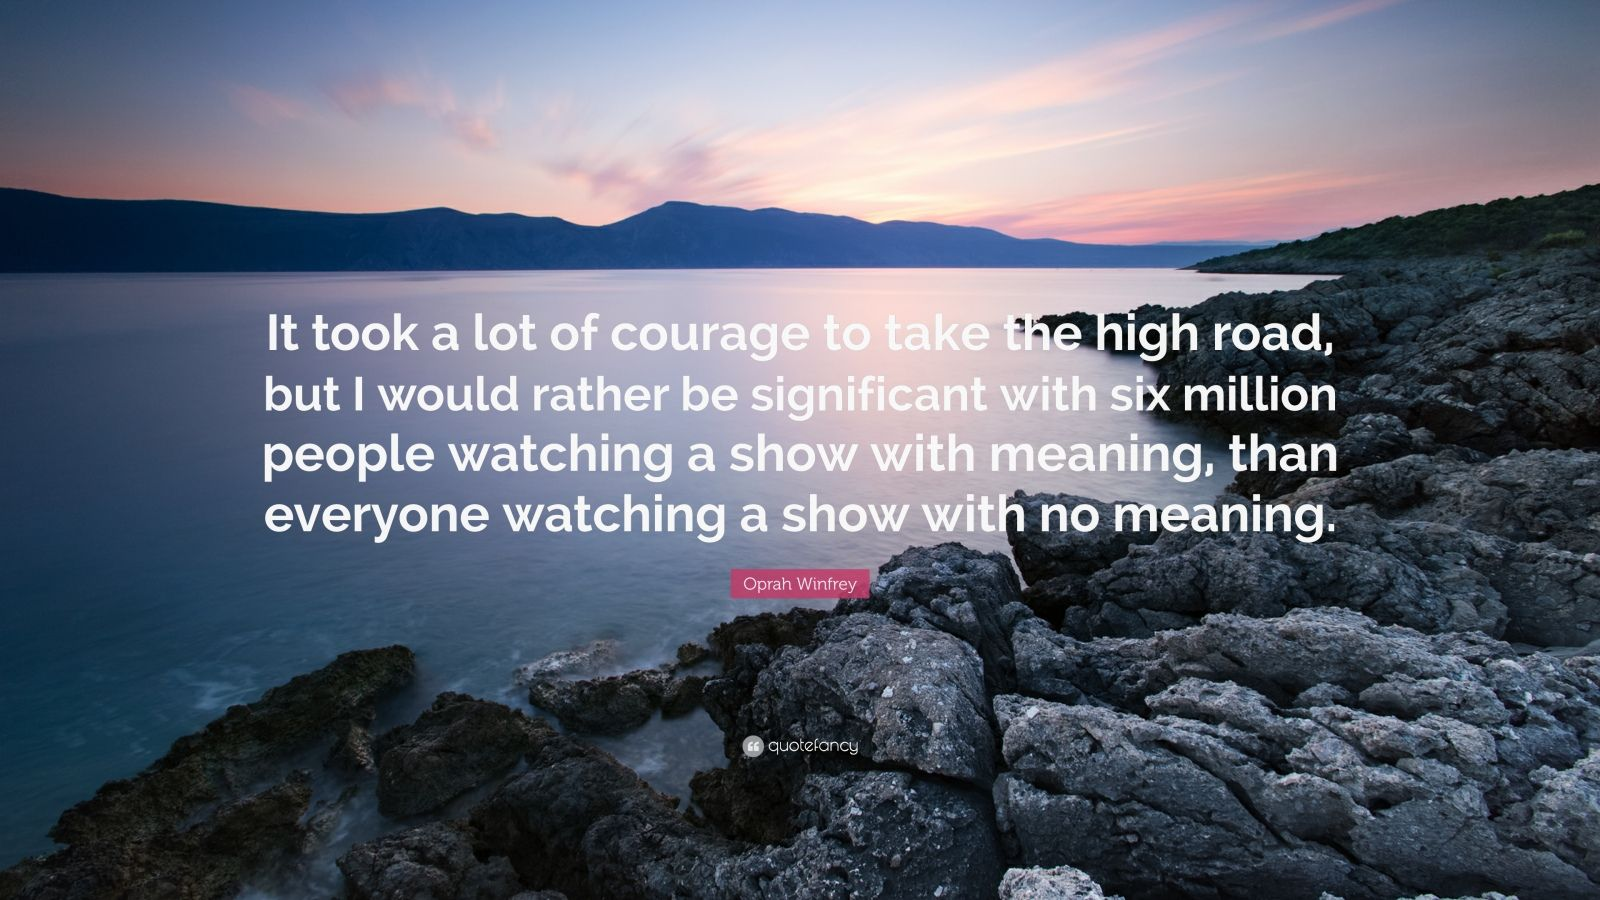 "Oprah Winfrey Quote: ""It took a lot of courage to take the high road, but I would rather be significant with six million people watching a show with meaning, than everyone watching a show with no meaning."""